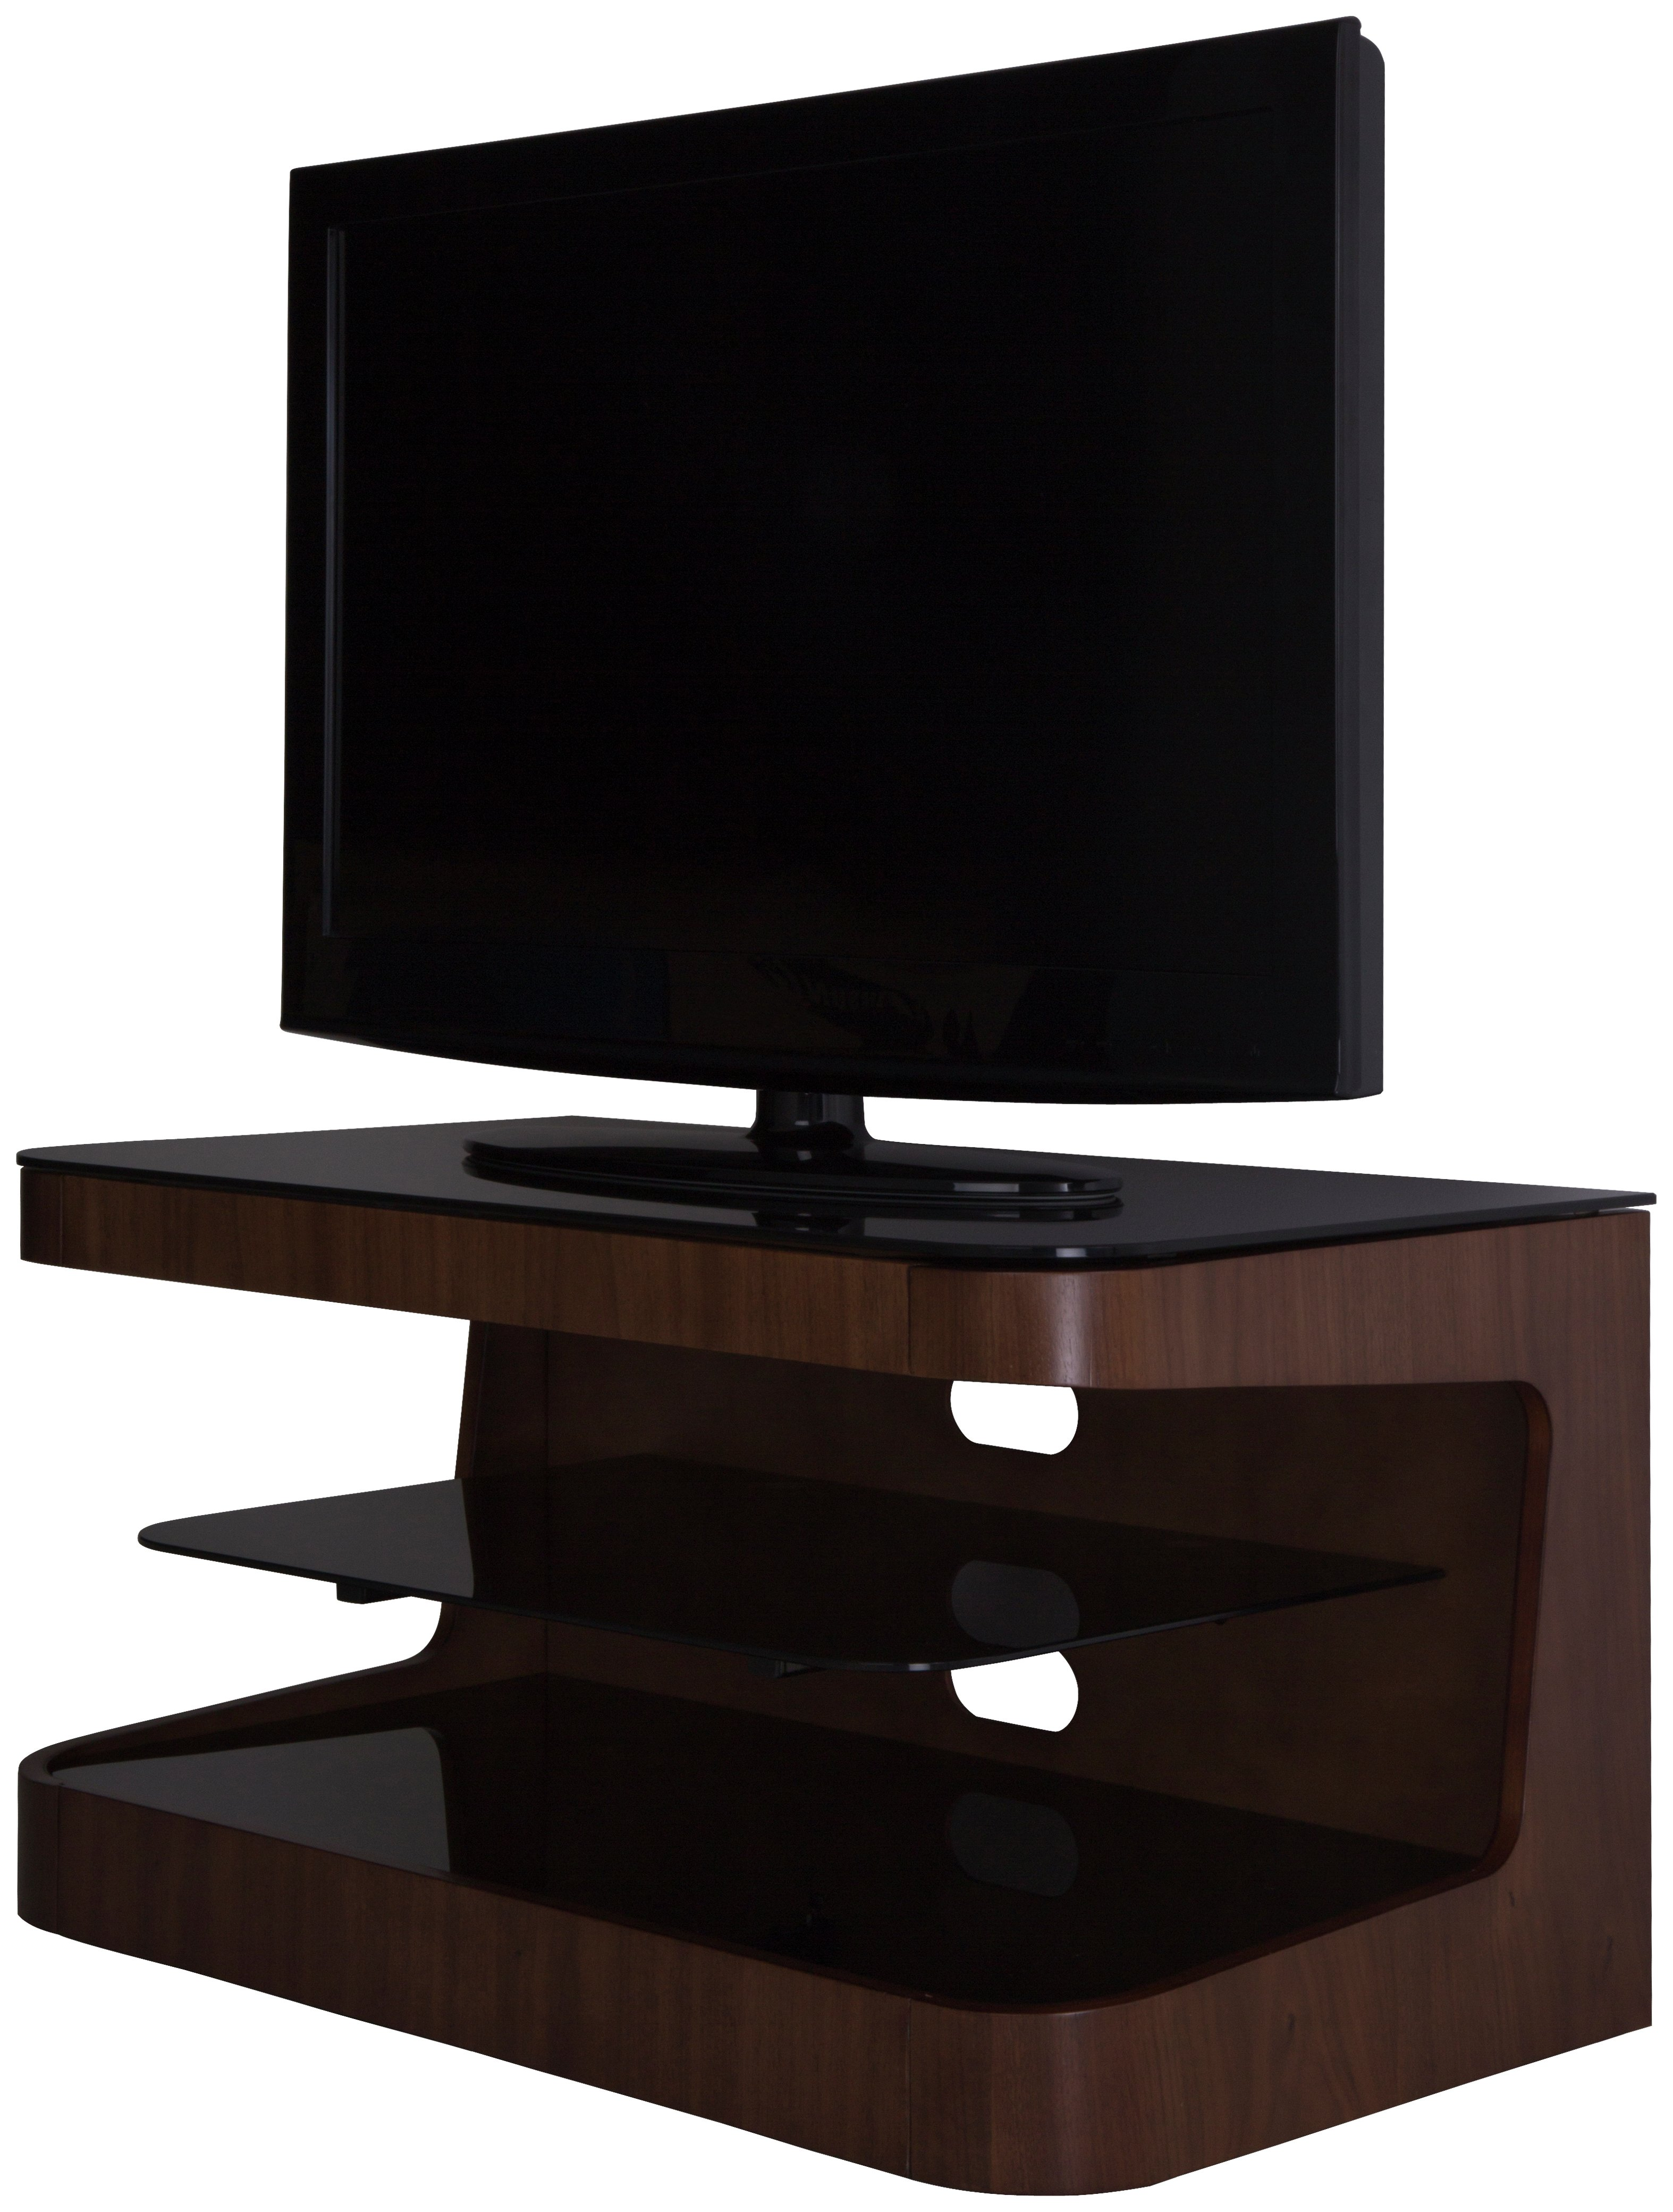 Avf Up To 40 Inch Wood Tv Stand Walnut 5436868 Argos Price